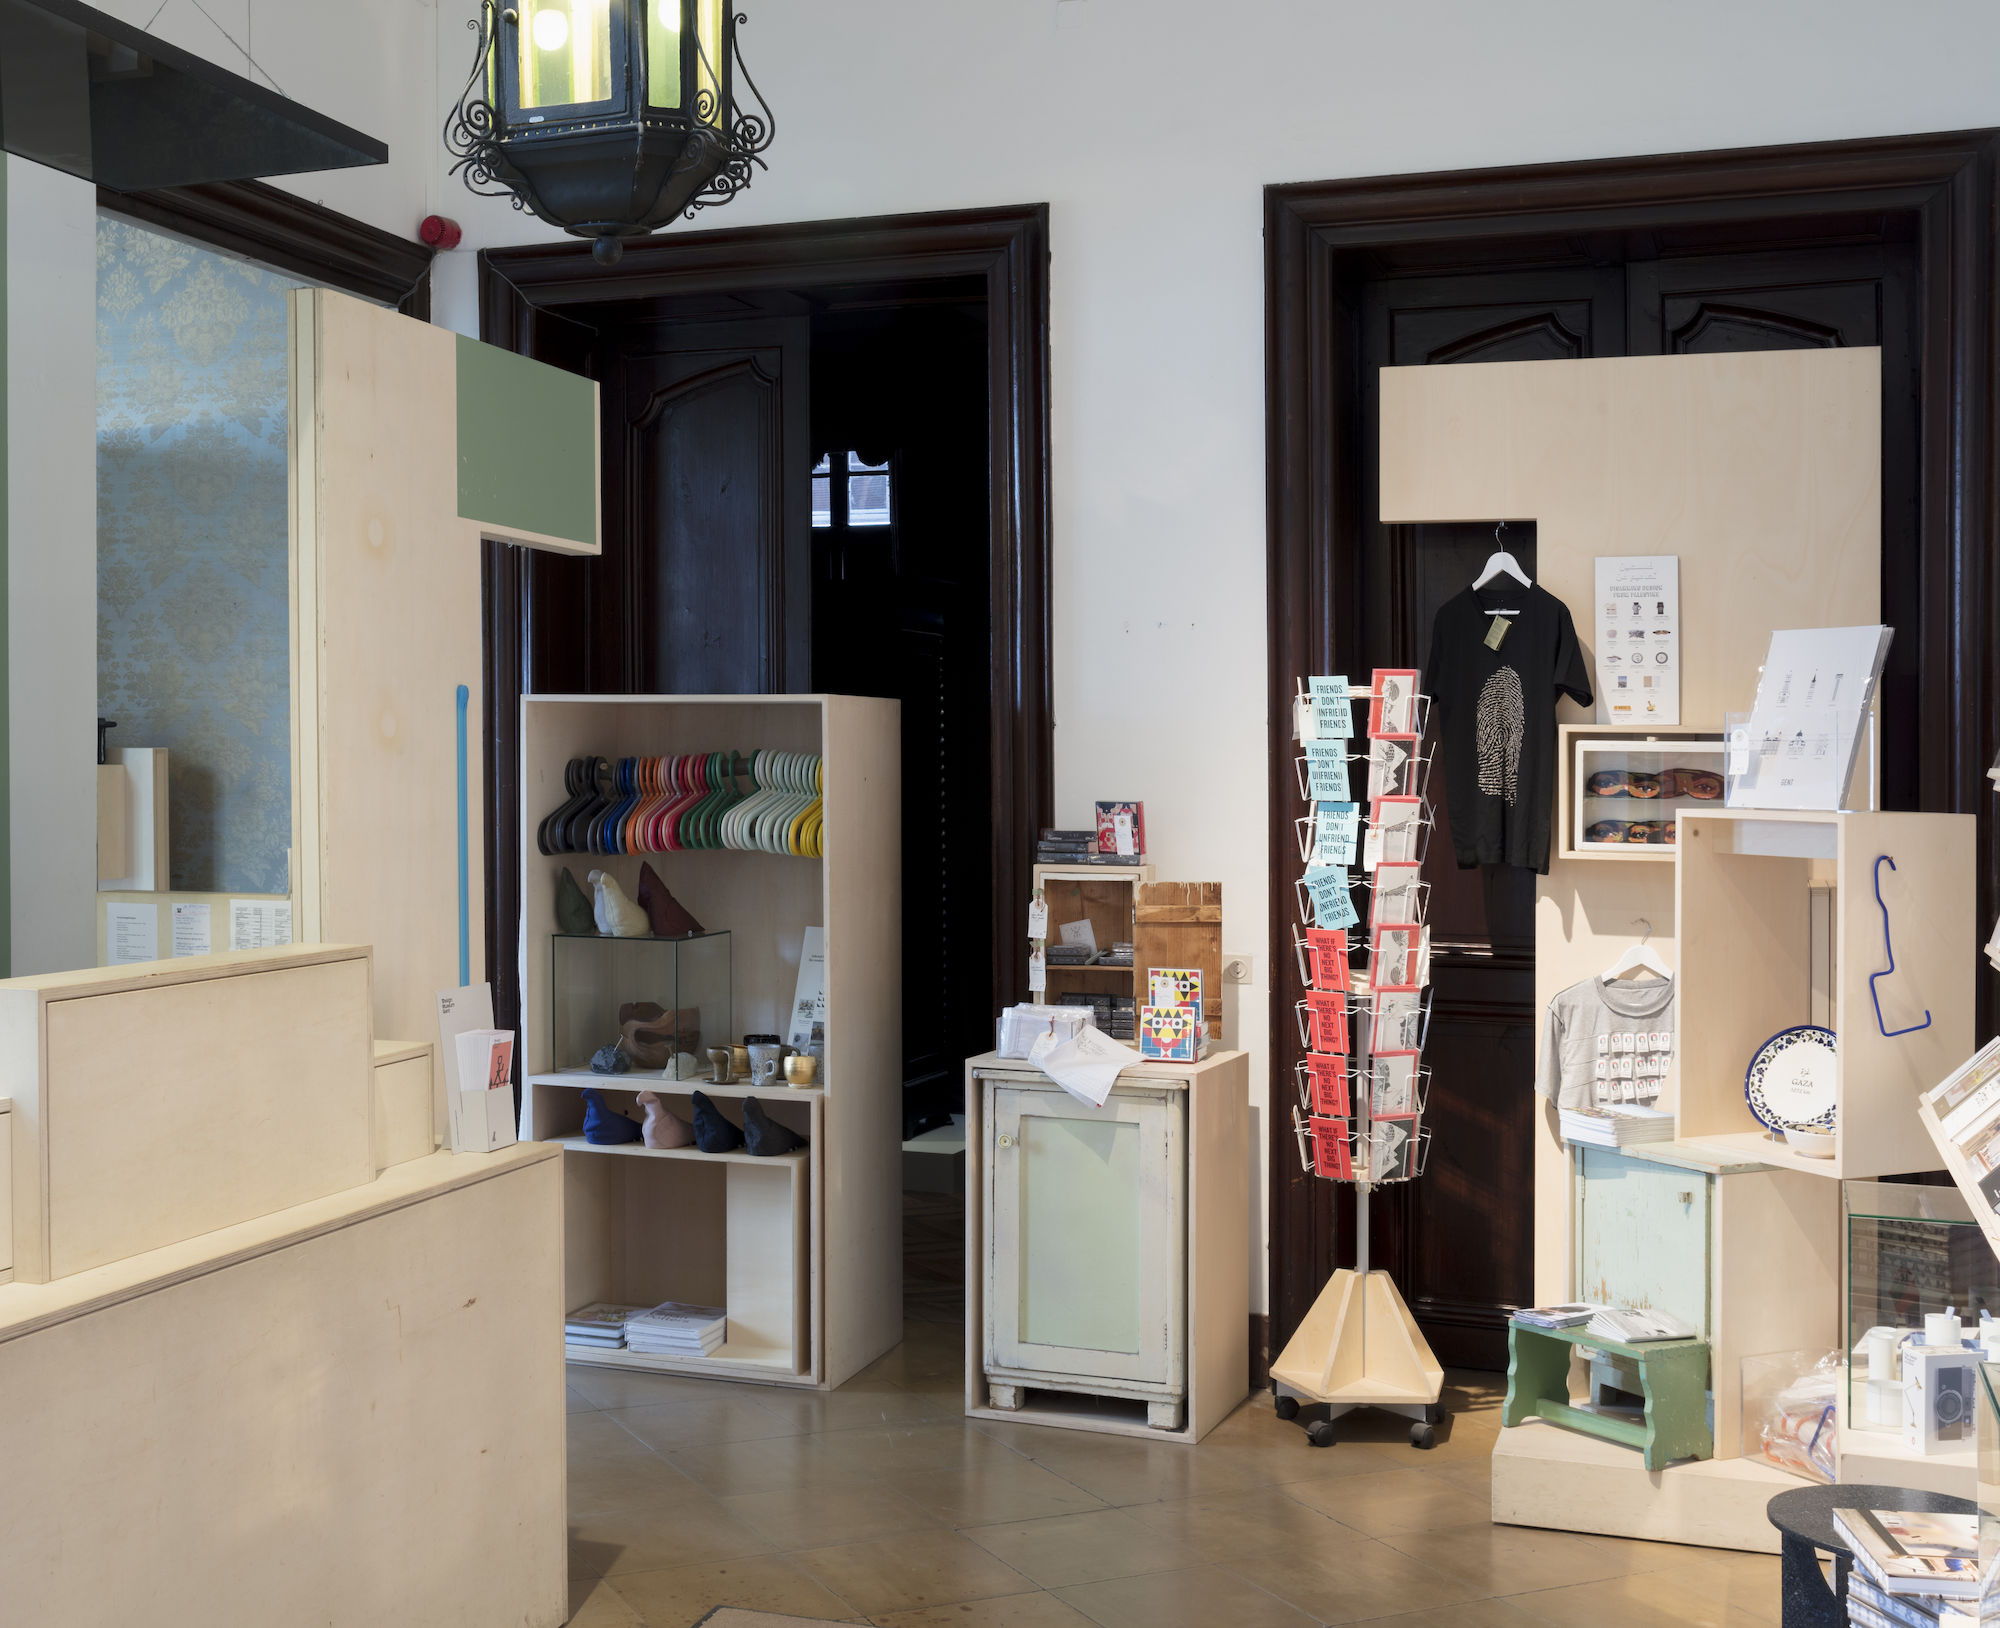 Design Museum Gent shop